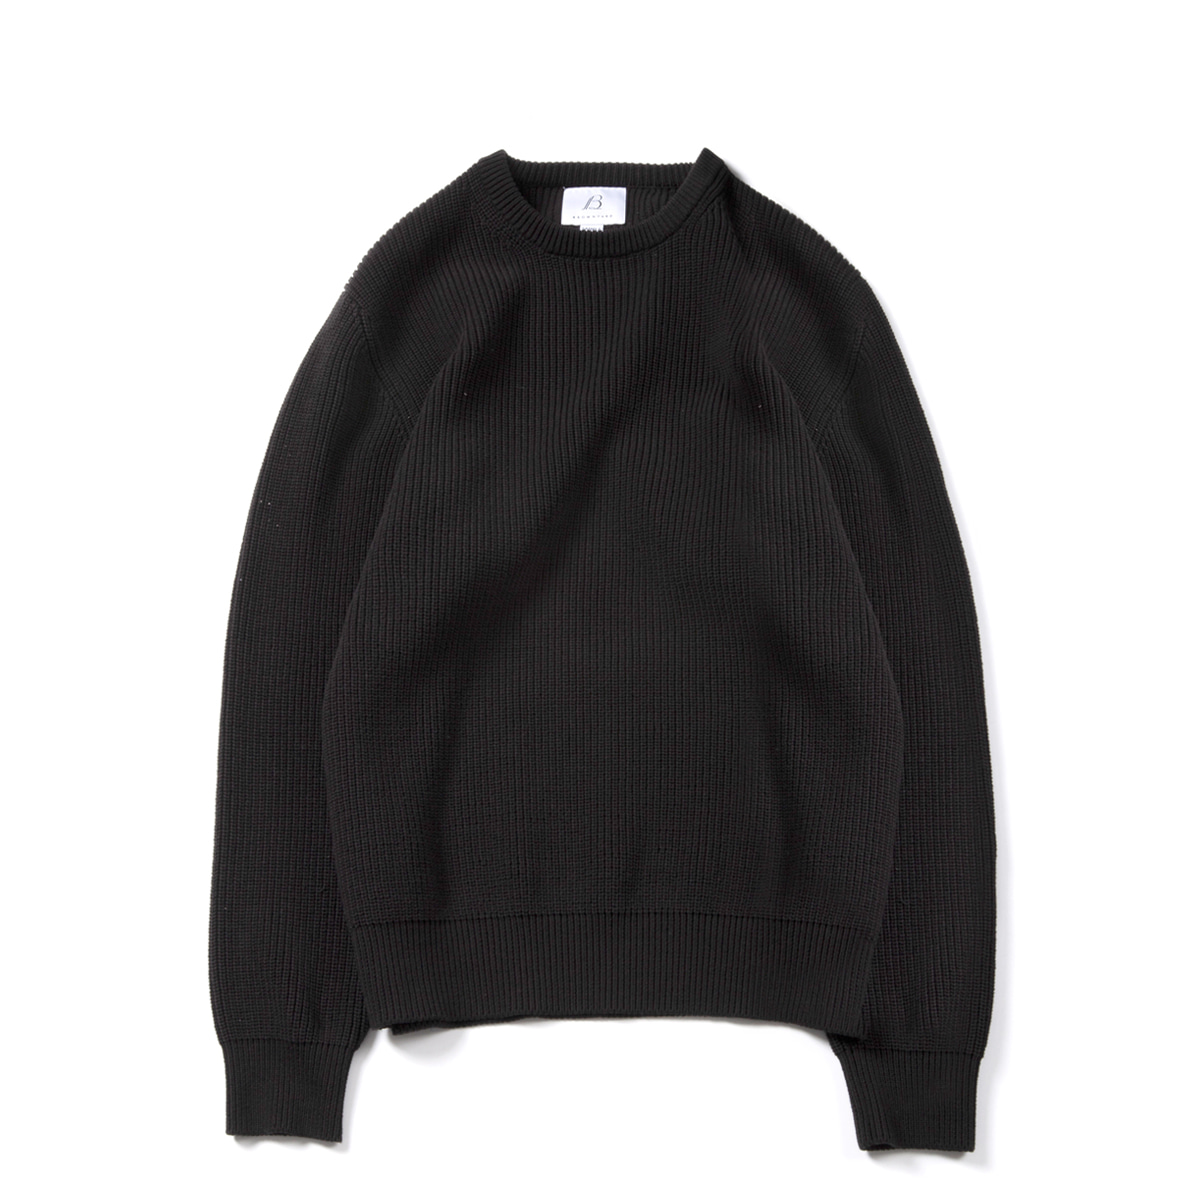 [BROWNYARD] FISHERMAN SWEATER 'BLACK'